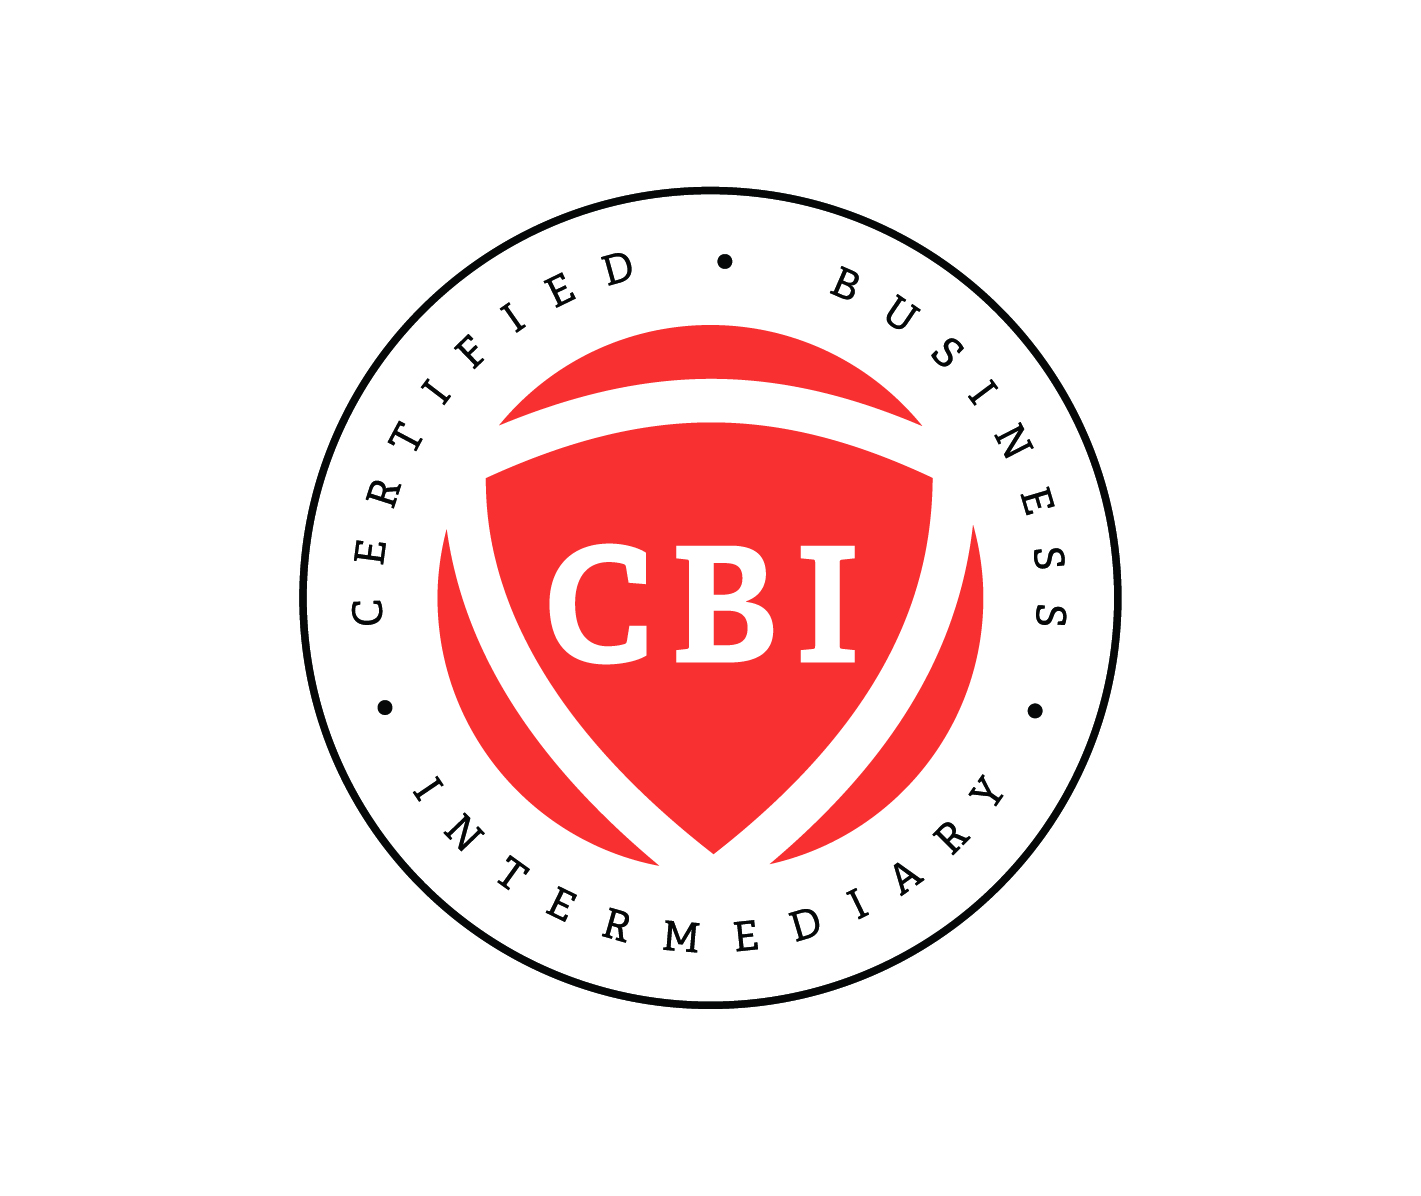 Brian Brown is a CBI - Certified Business Intermediary